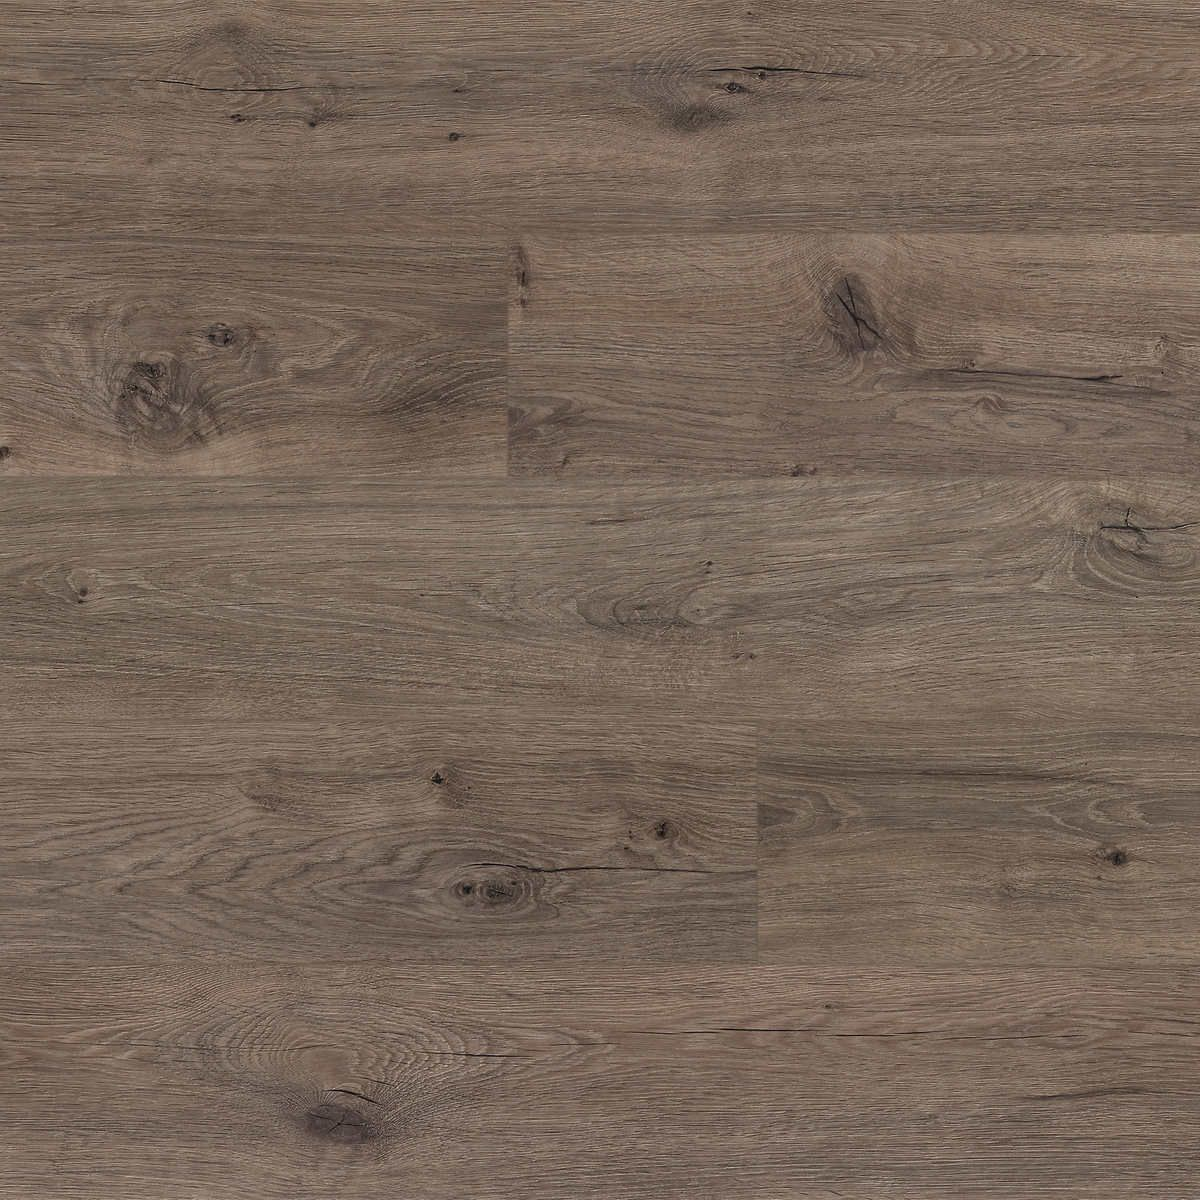 Costco 1 36 Sqft Harmonics Silverleaf Oak Laminate Flooring 22 08